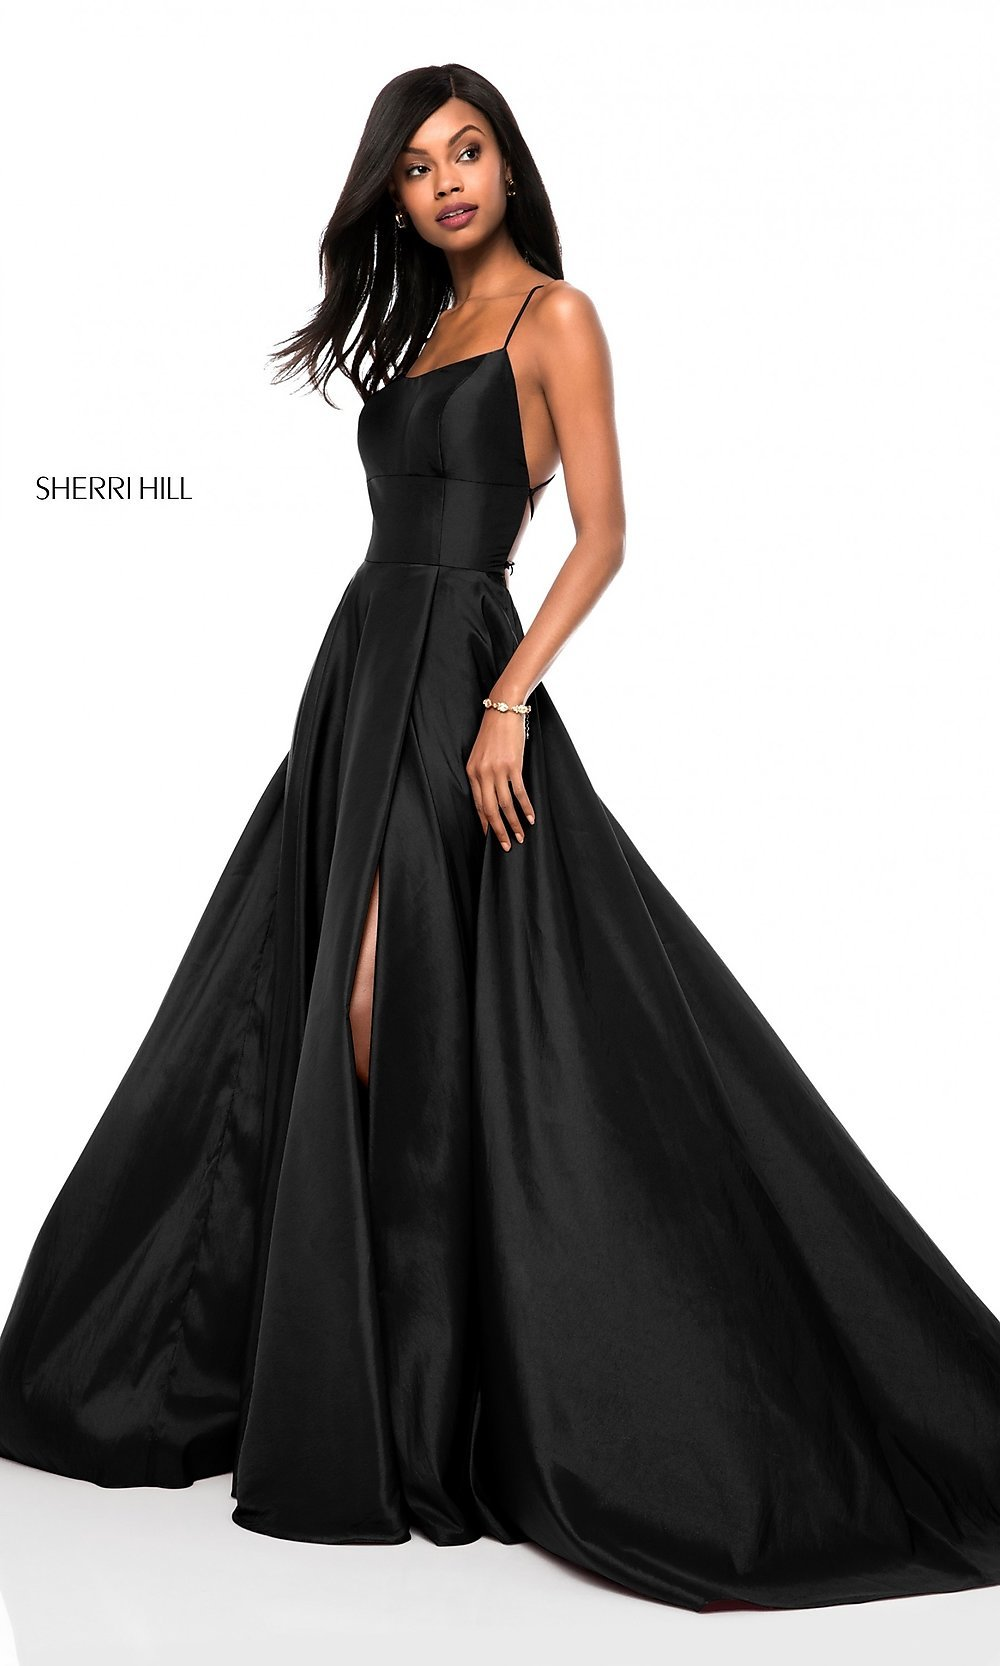 sherri hill formal dresses